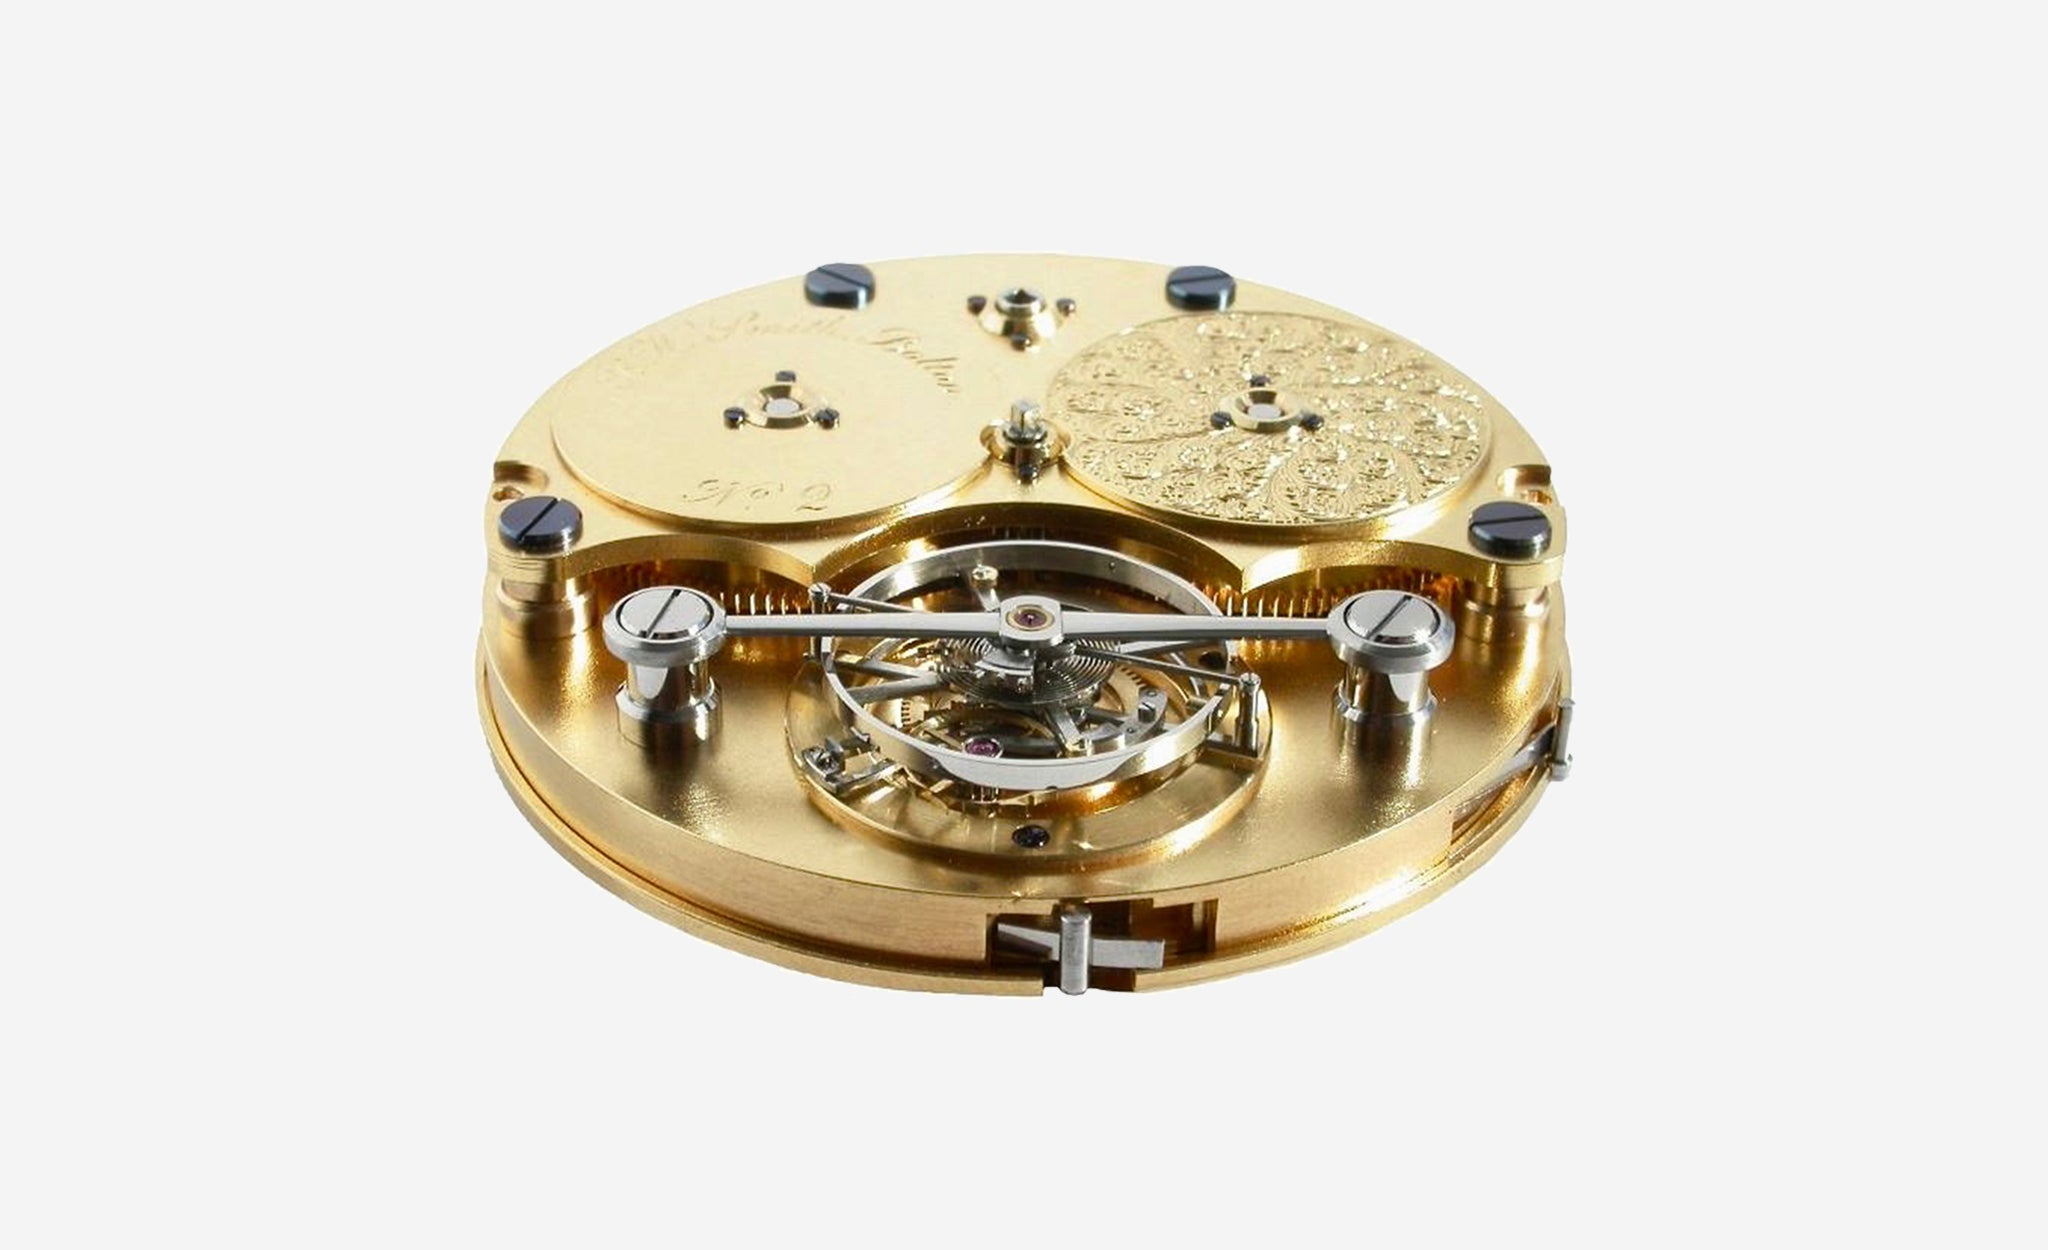 Roger W. Smith pocket watch no. 2 movement with tourbillon and gold plates for A Collected Man London